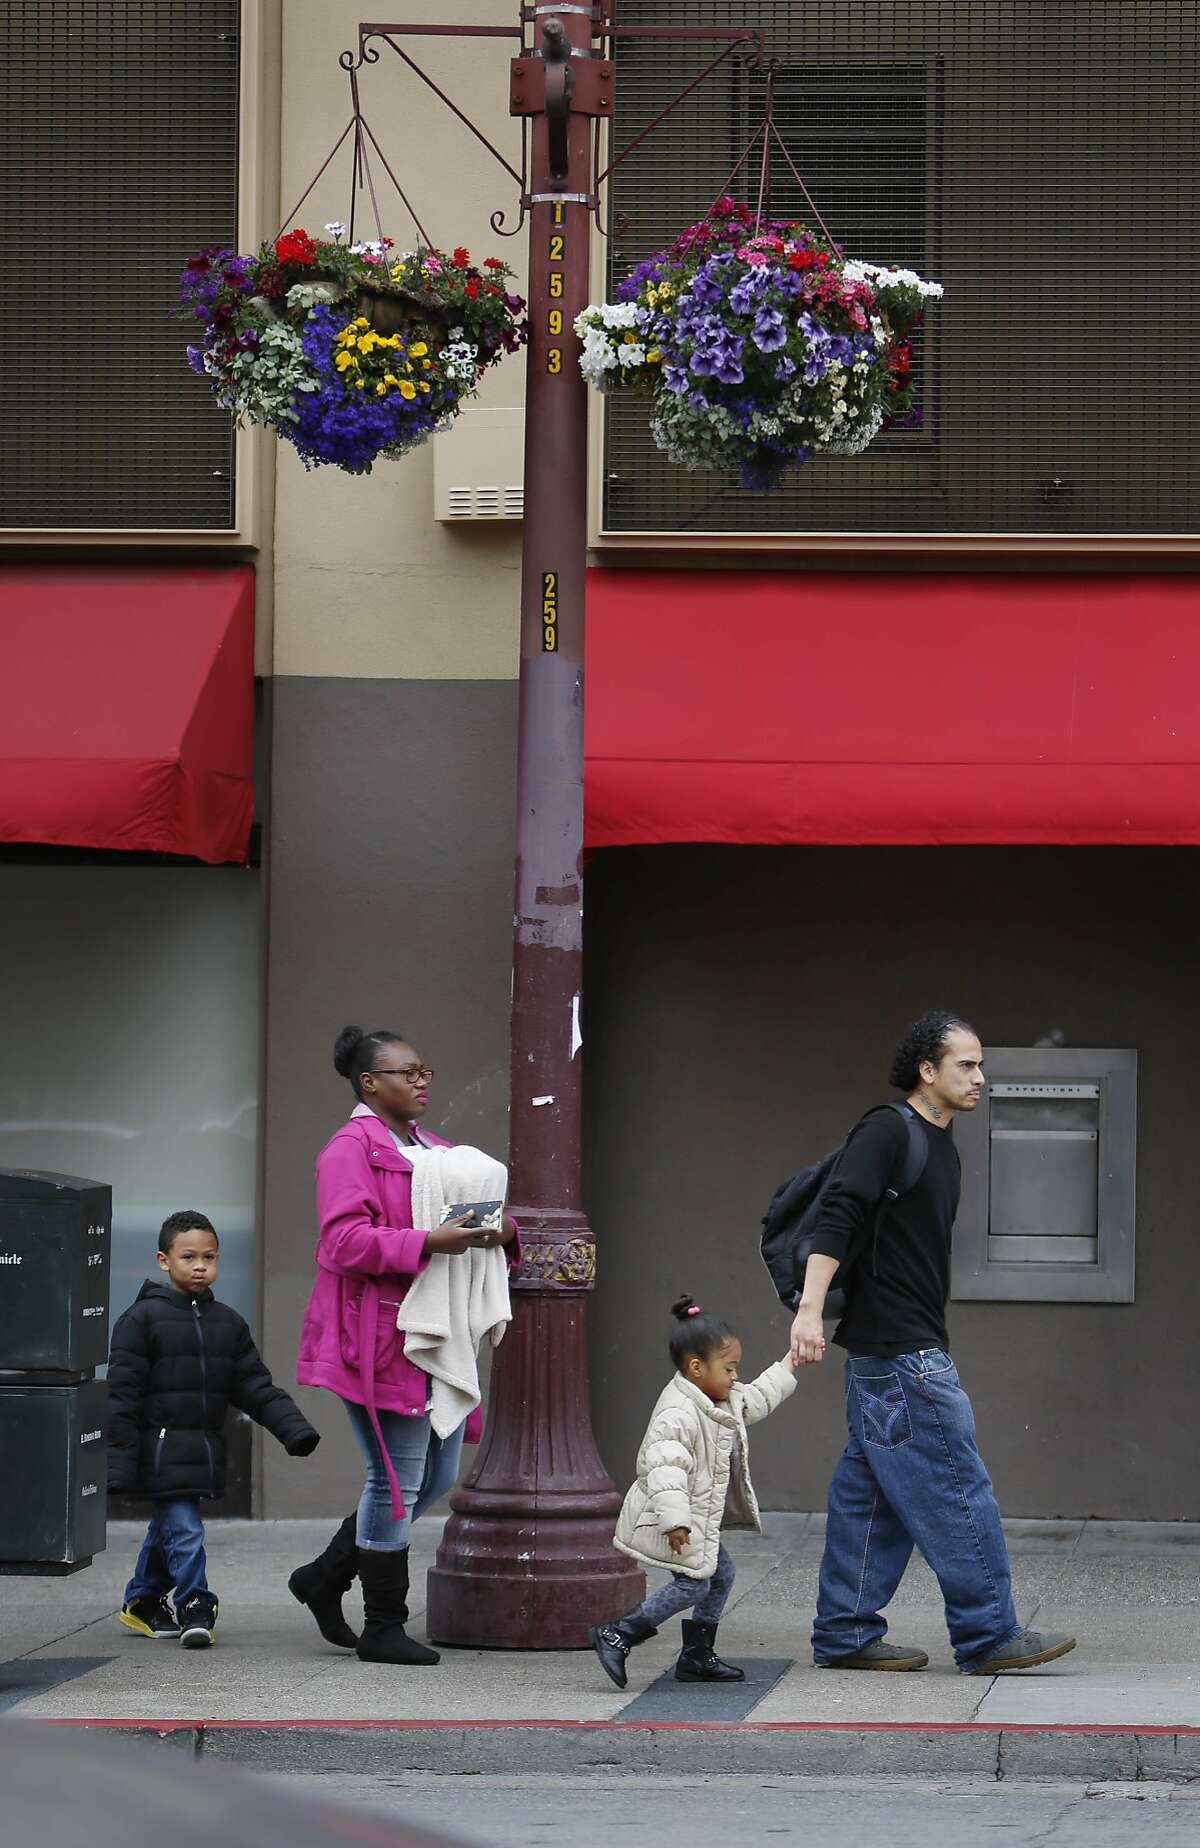 Ricardo Piedra (right) holds the hand of Jailyn Piedra (second from right) while Tamicka Crawford (second from left) carries Josiah Piedra (center), 1 month and is followed by Jeremiah Piedra (left), 6, all of San Francisco as they walk beneath flowers hanging from a lamp post on Mission Street between 21st and 22nd Streets on Monday, June 22, 2015 in San Francisco, Calif.